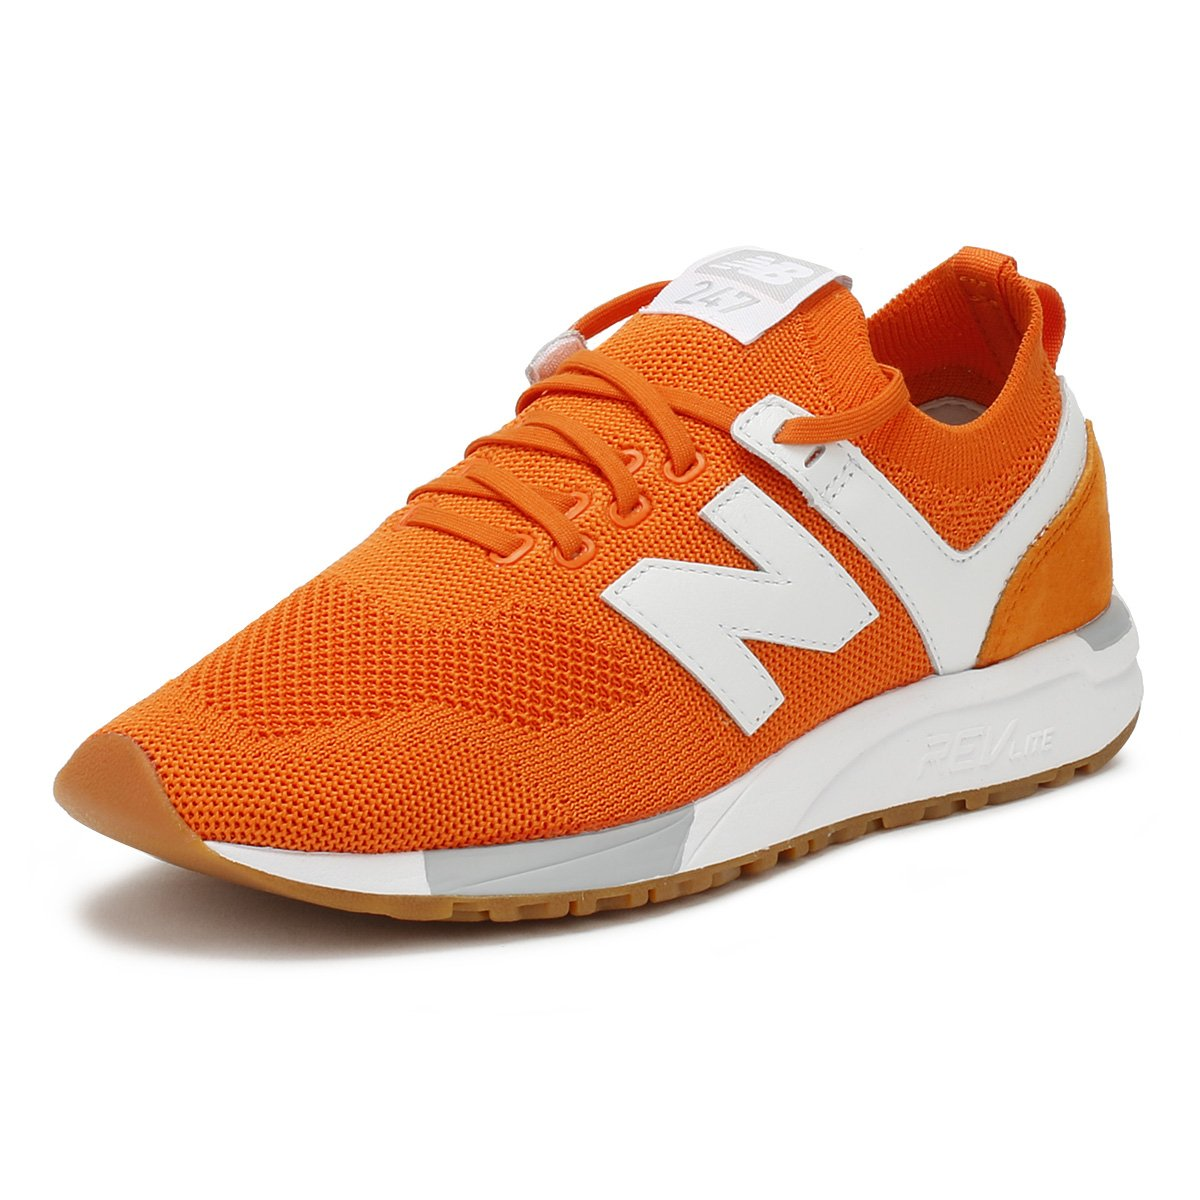 New Balance Men's 247 Mesh Trainers, Blue Motorcycle B0751VGFKP Motorcycle Blue & Combat c9c9ec